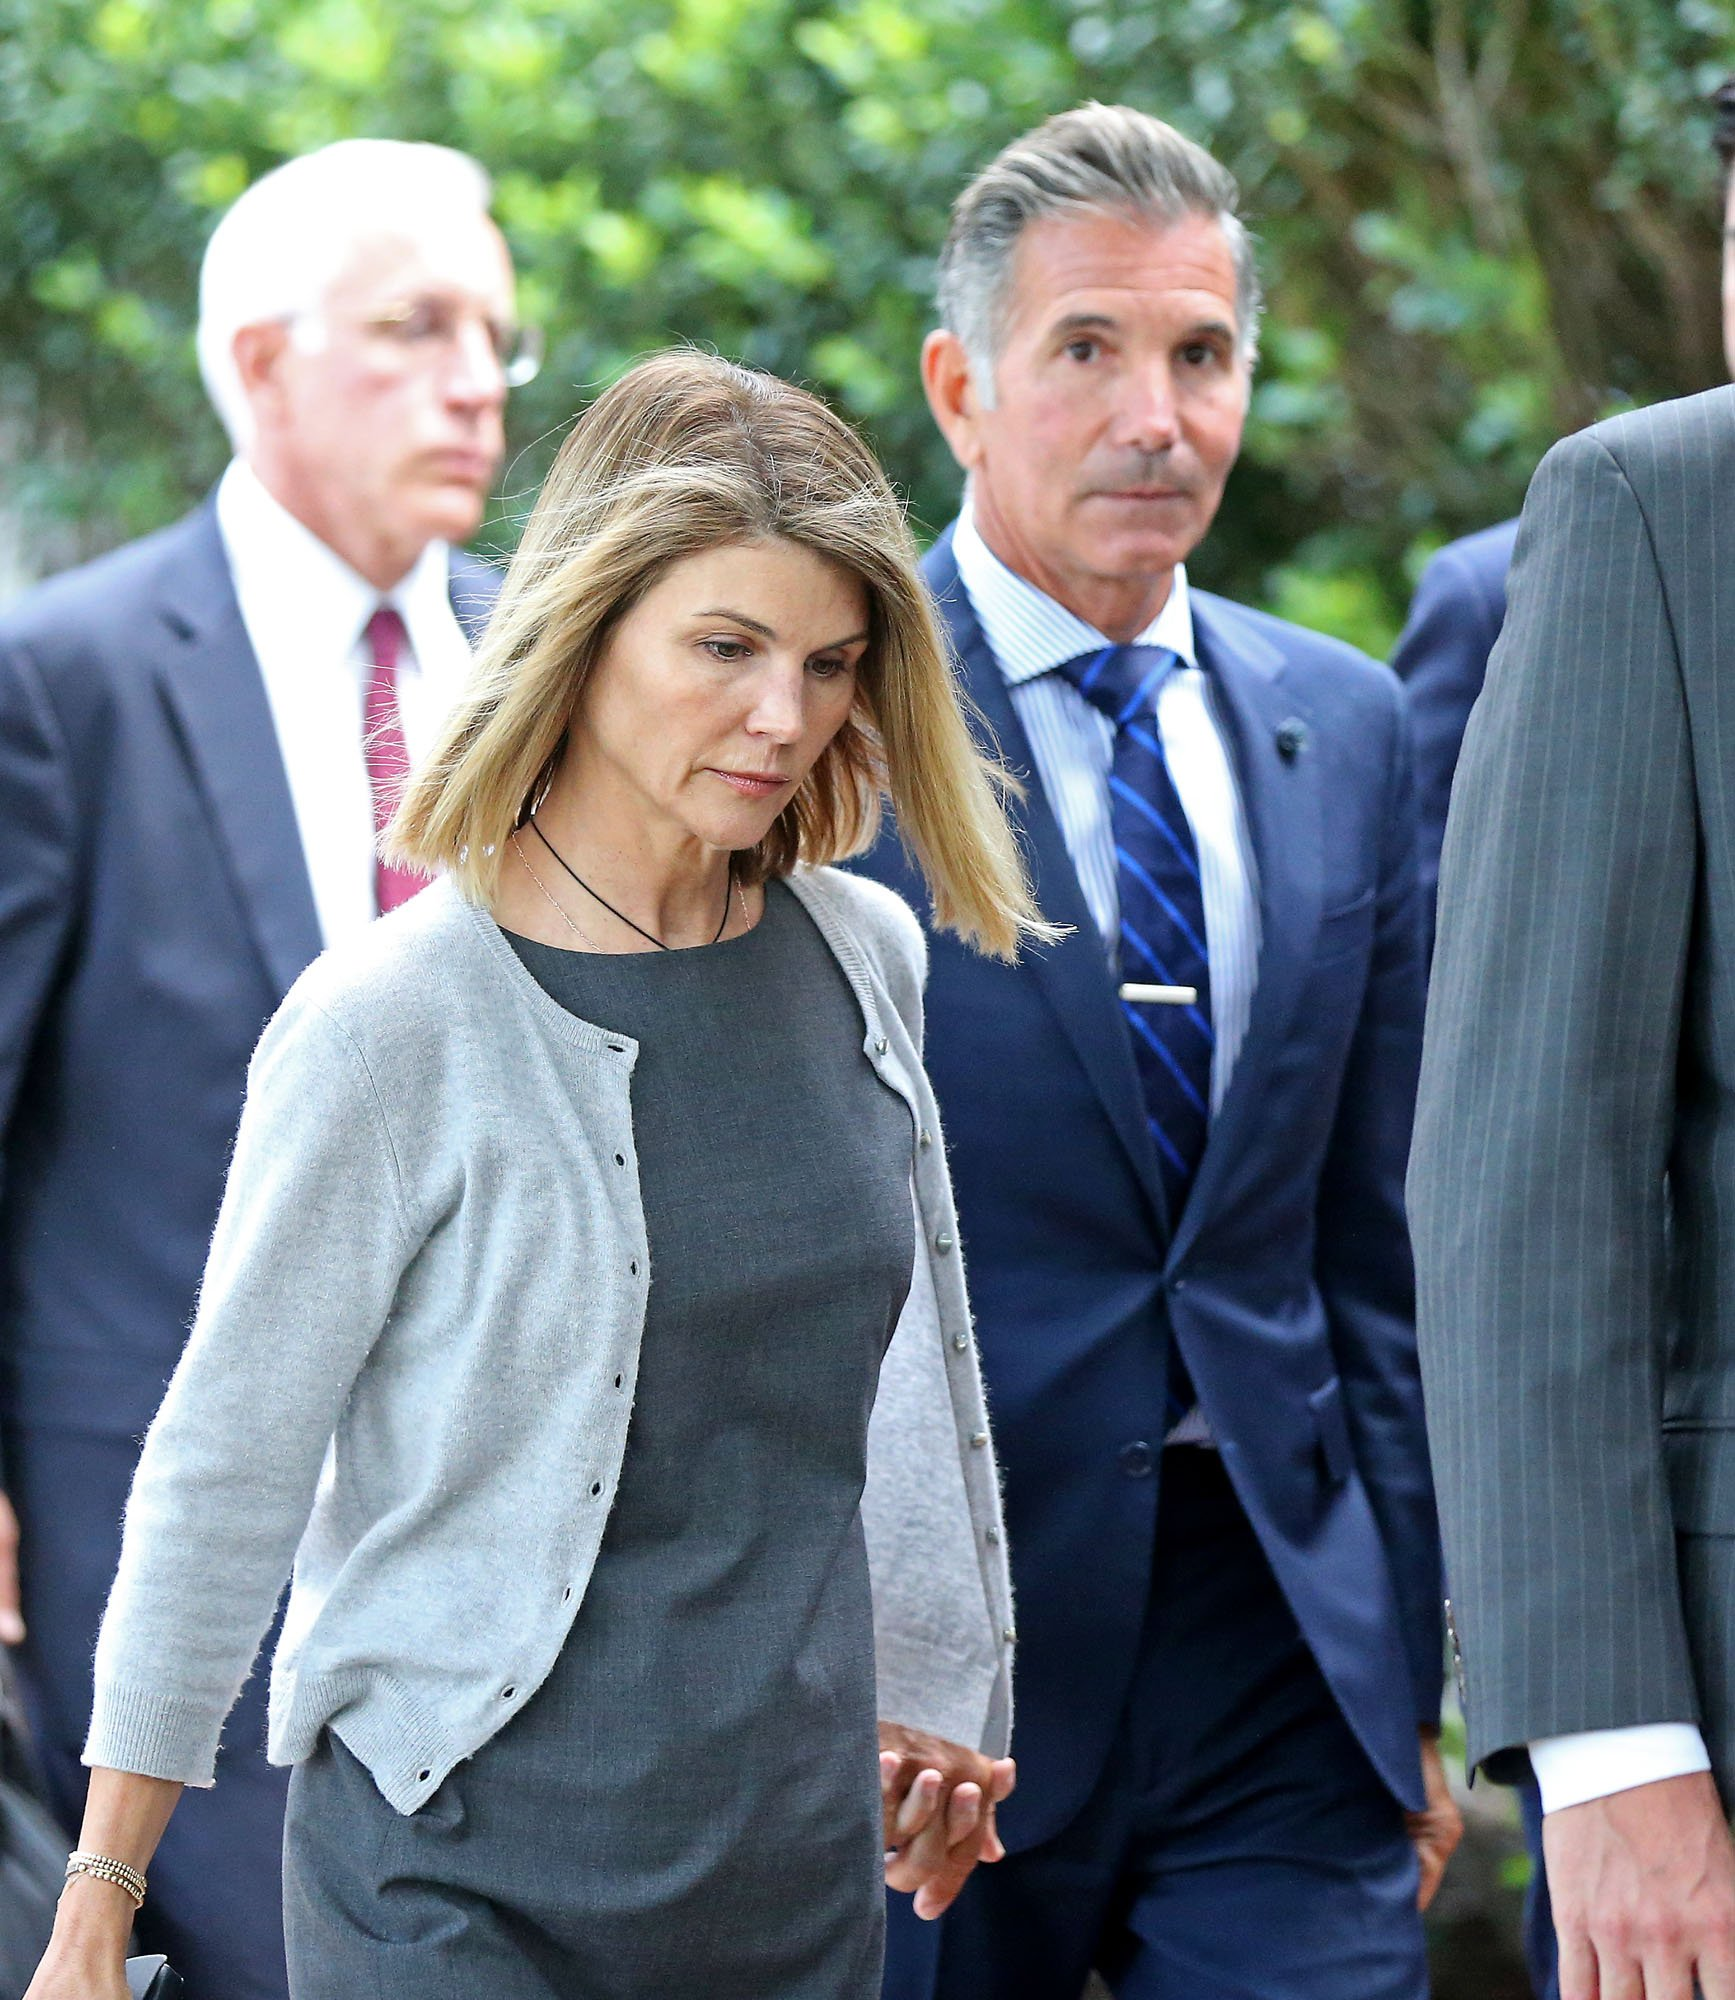 Mossimo Giannulli and Lori Loughlin leaving the courthouse after their hearing on 27 August, 2020. | Photo: Getty Images.